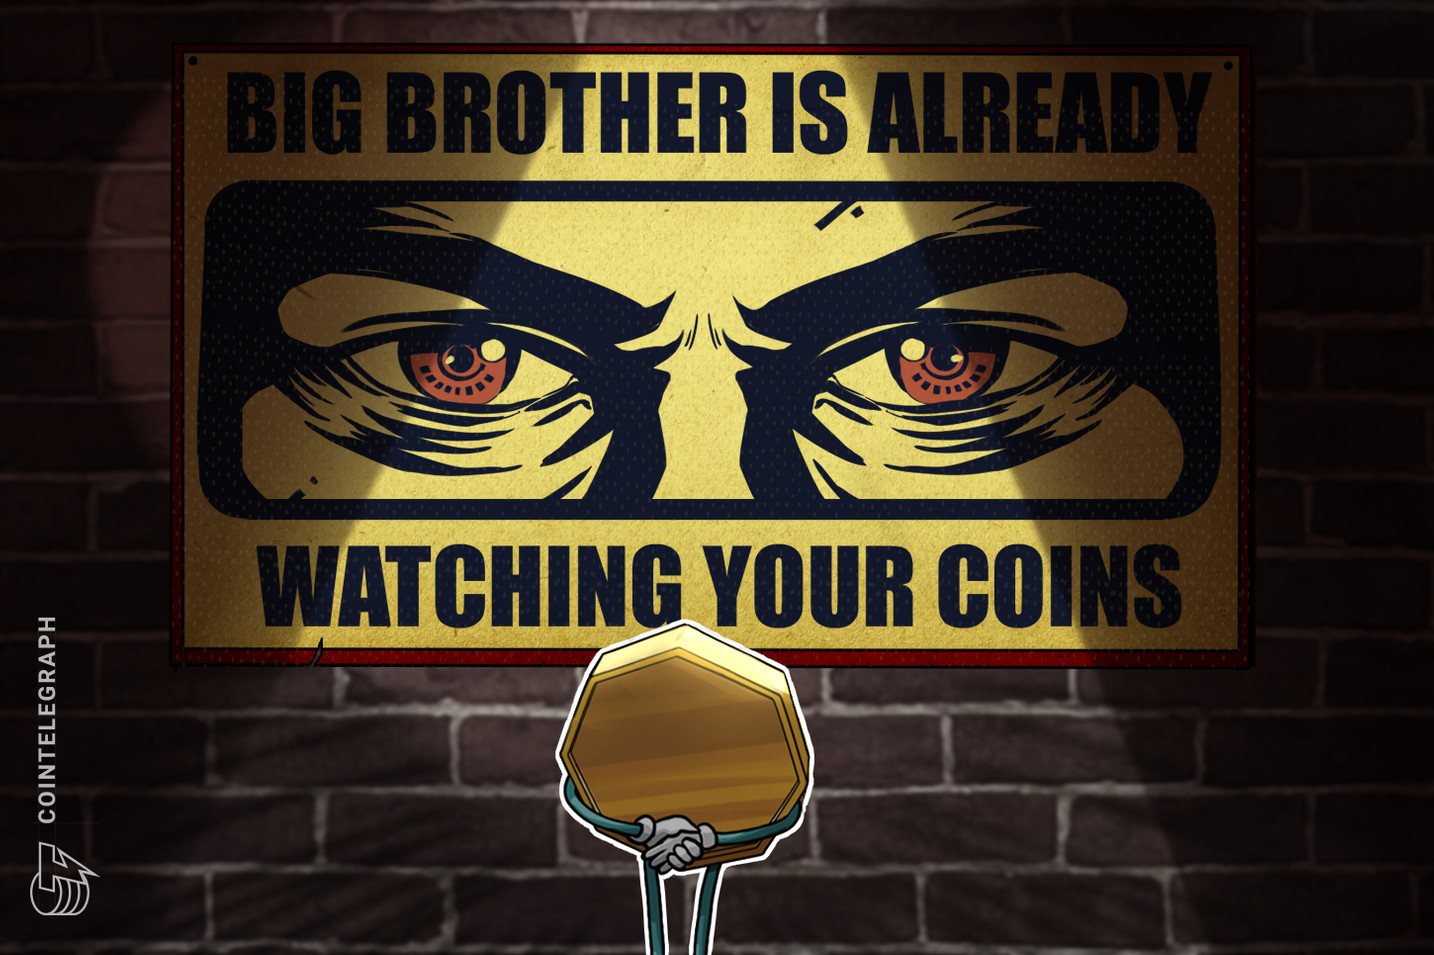 Nevermind Coinbase — Big Brother Is Already Watching Your Coins